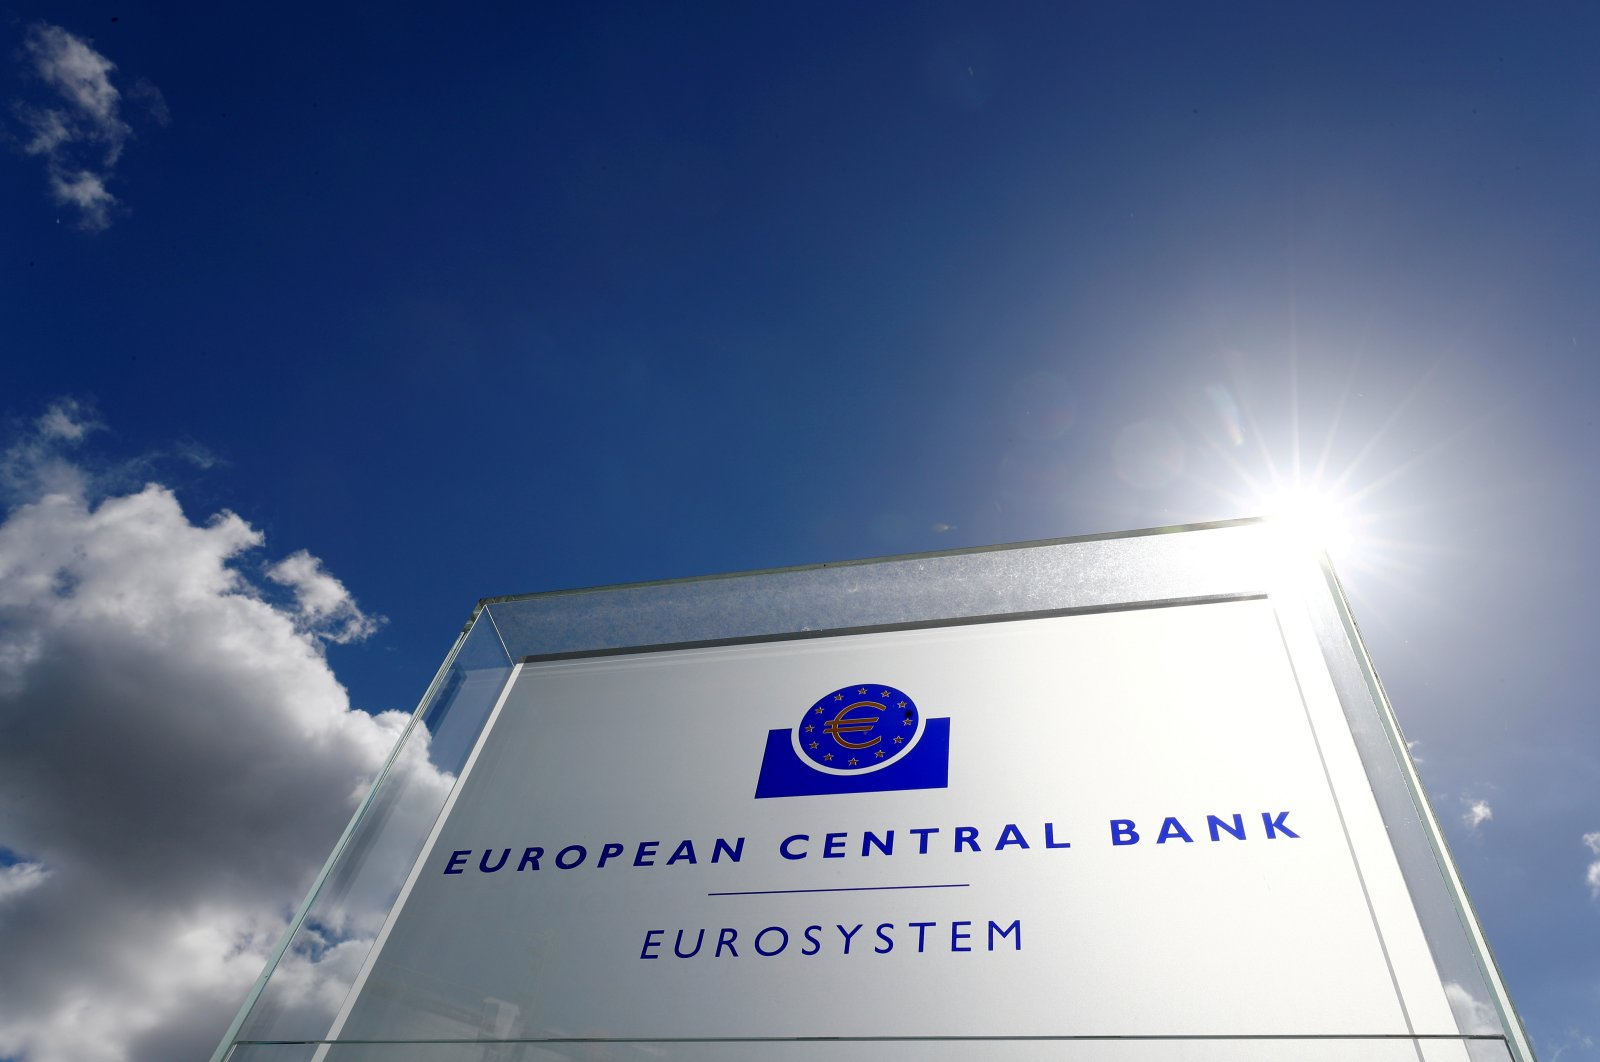 The logo of the European Central Bank (ECB) is pictured outside its headquarters in Frankfurt, Germany, April 26, 2018. (Reuters Photo)